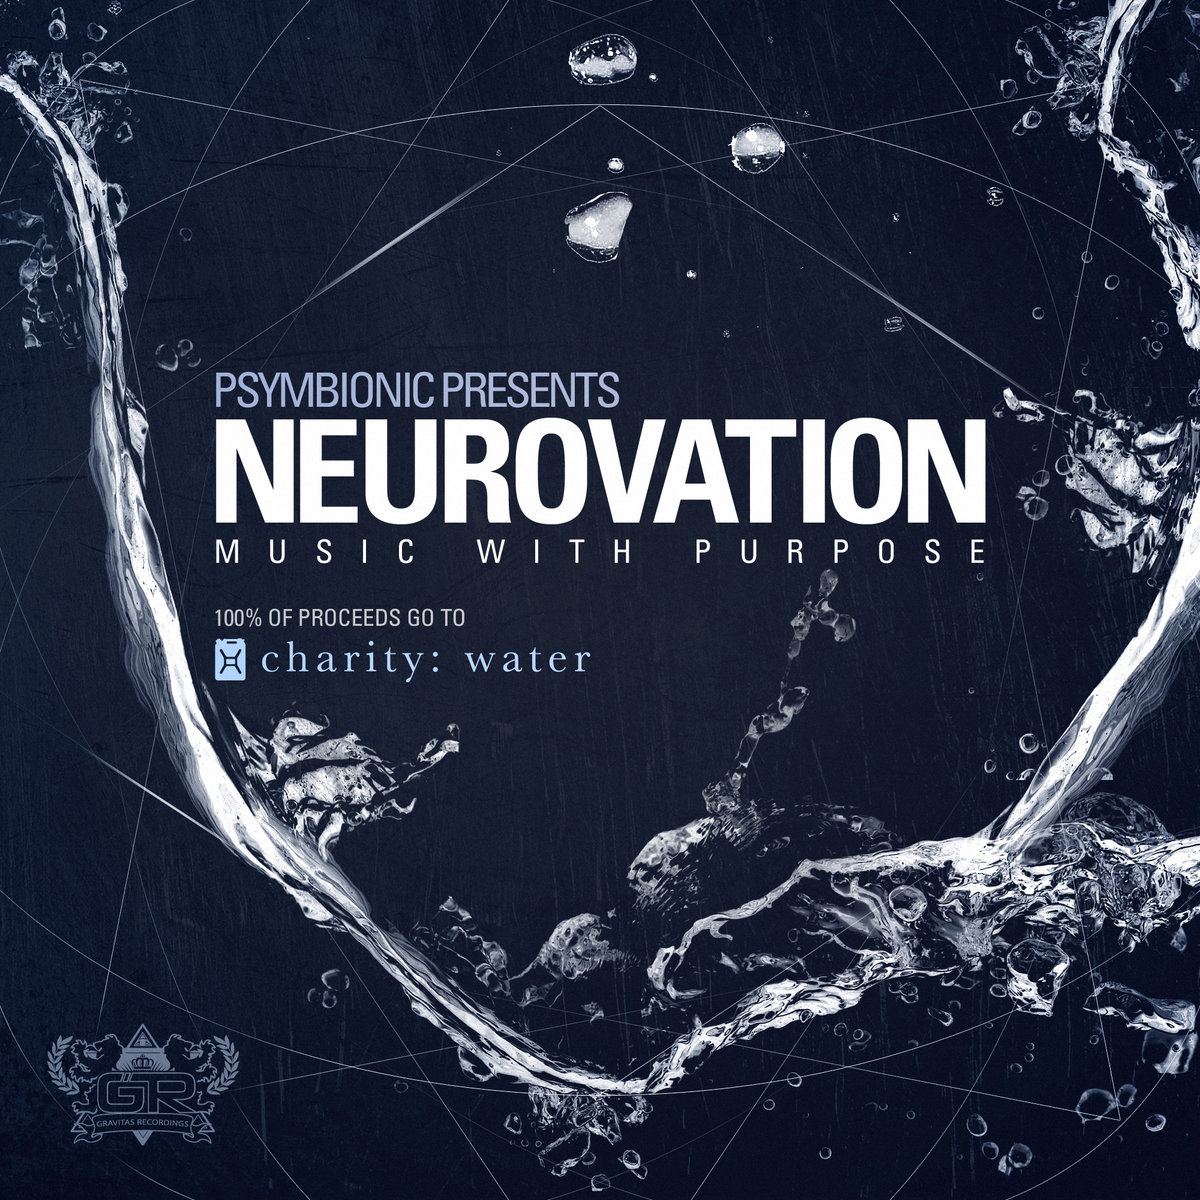 Minnesota - Stardust @ 'Psymbionic Presents: Neurovation' album (cryptex, glitch hop)